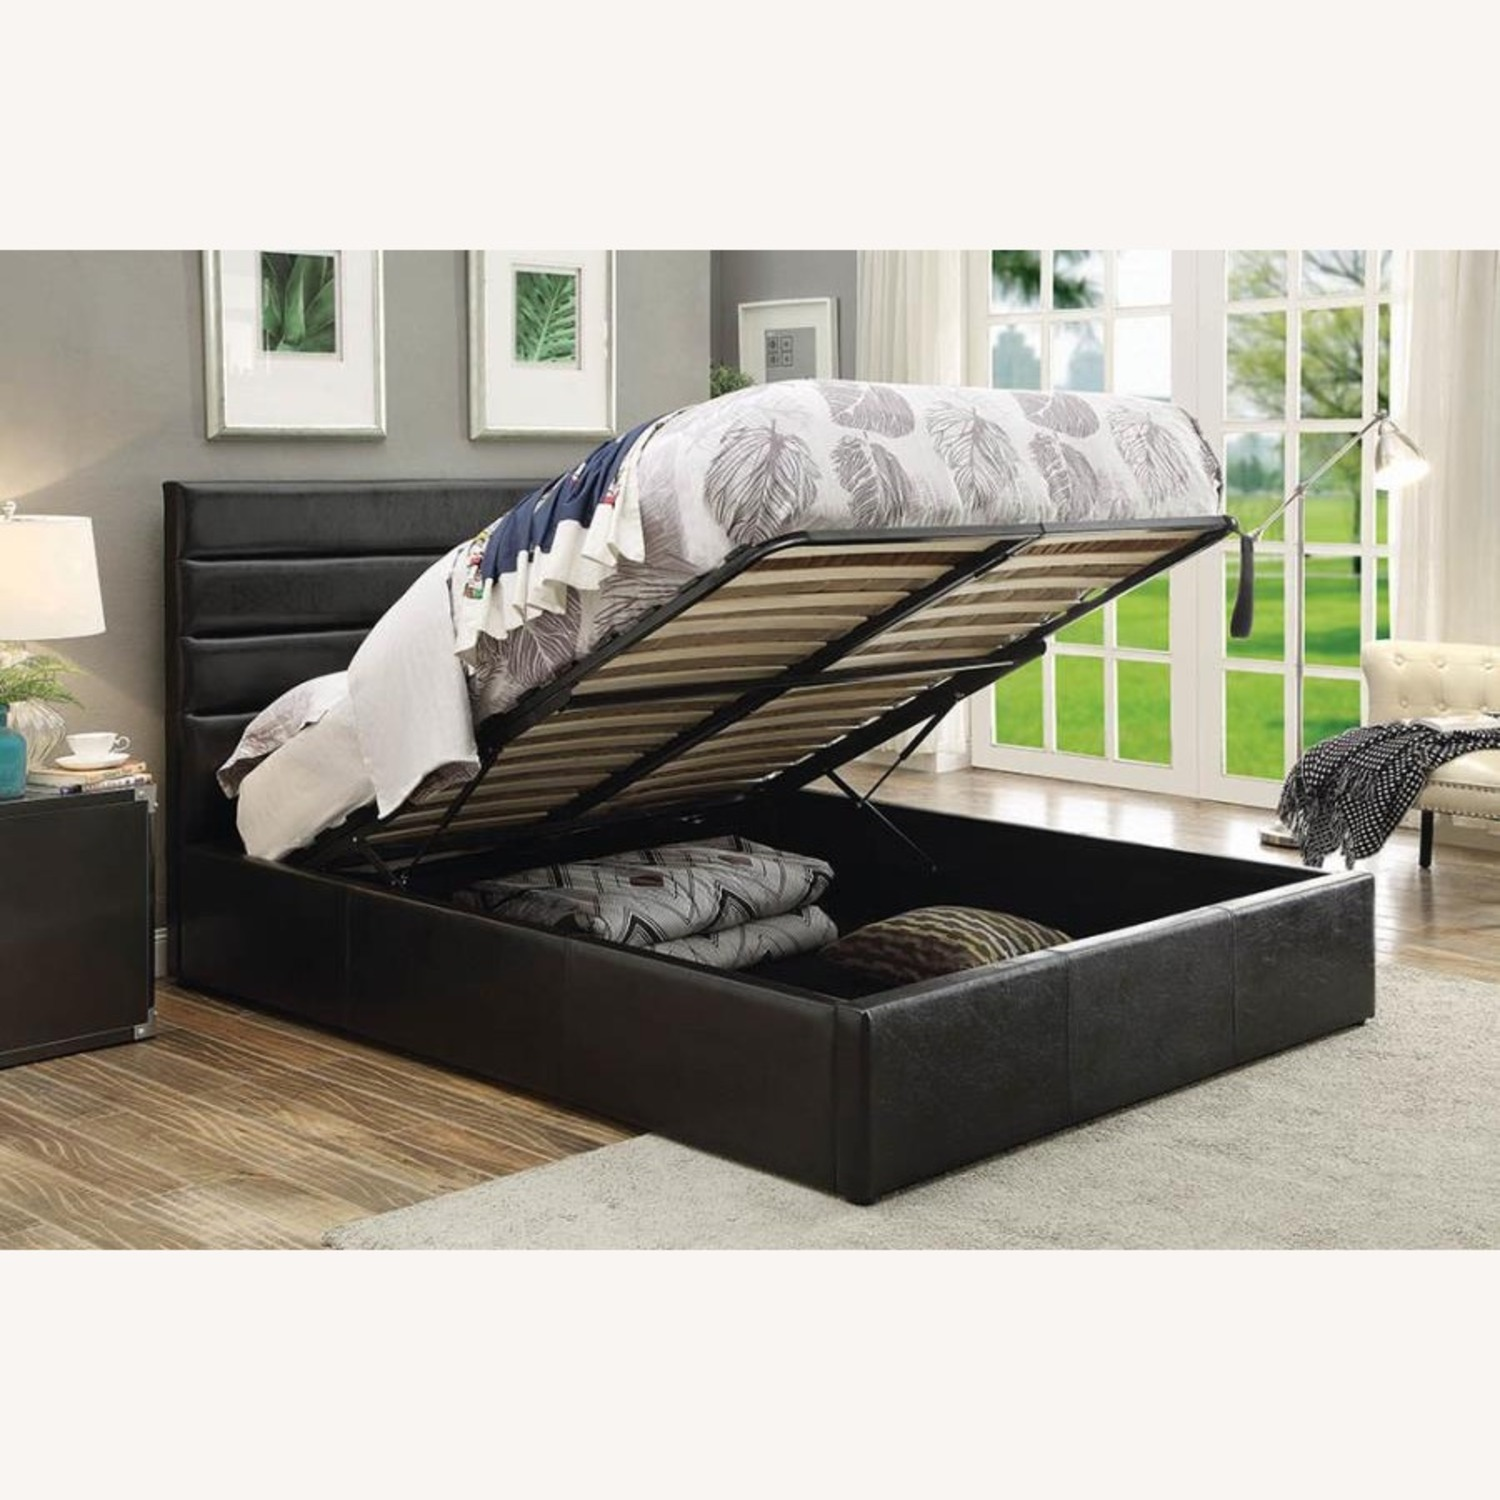 King Bed W/ Lift-Up Storage In Black Leatherette - image-2